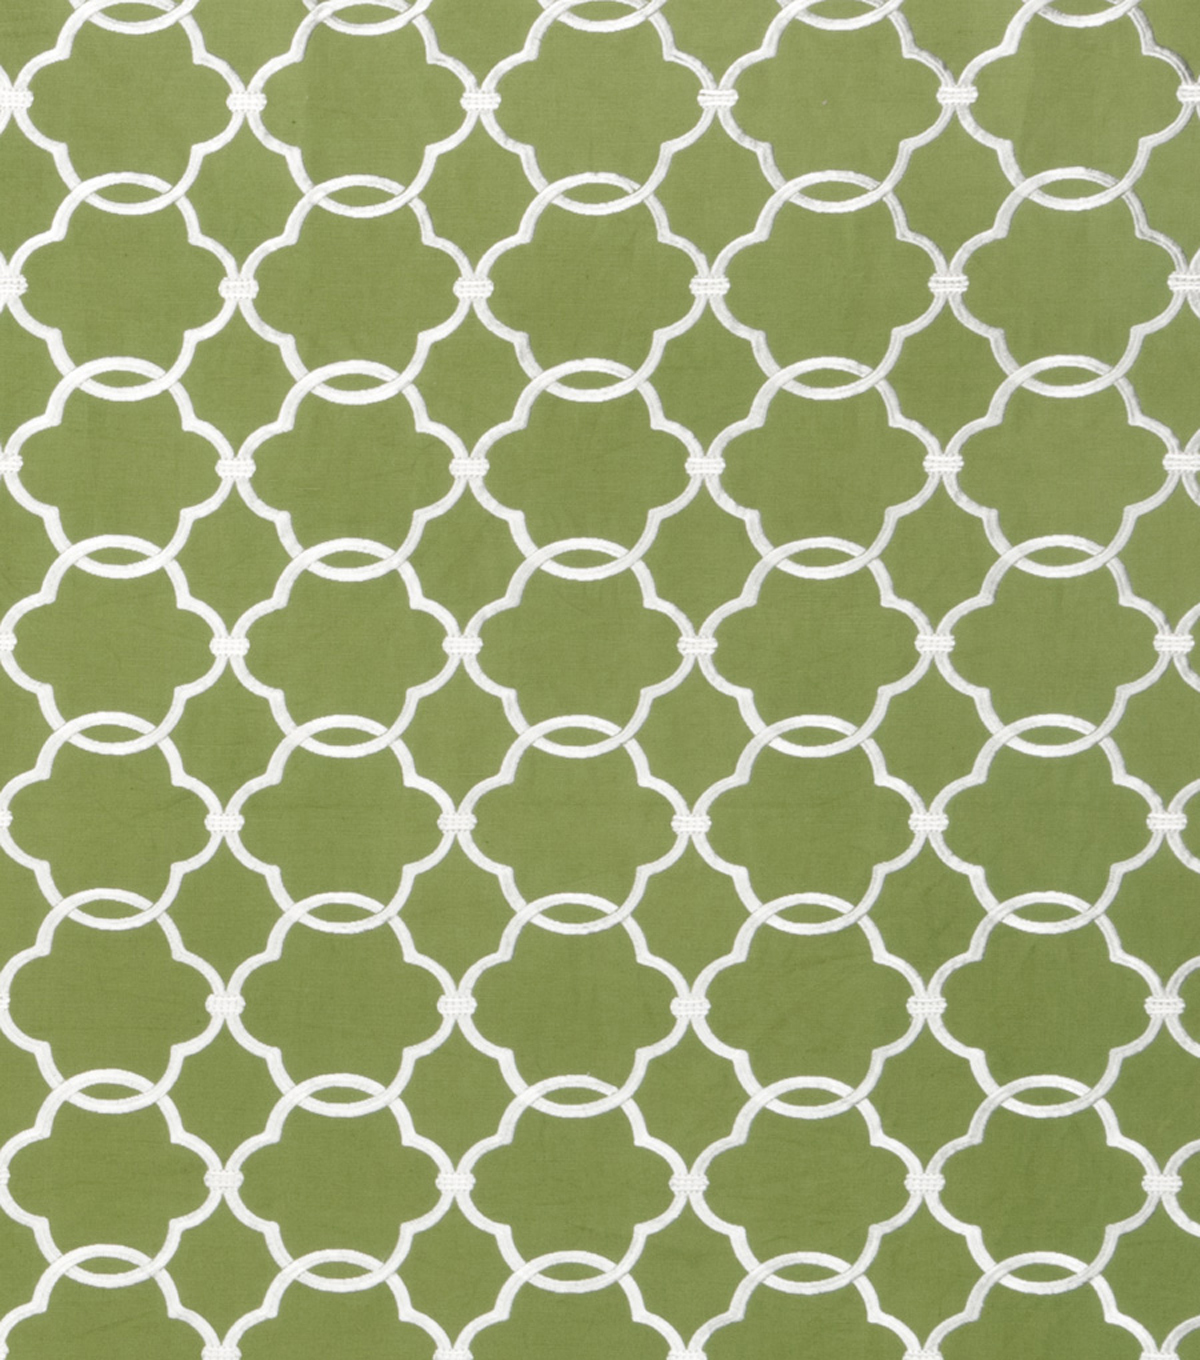 Eaton Square Lightweight Decor Fabric 53\u0022-Spackle/Grass